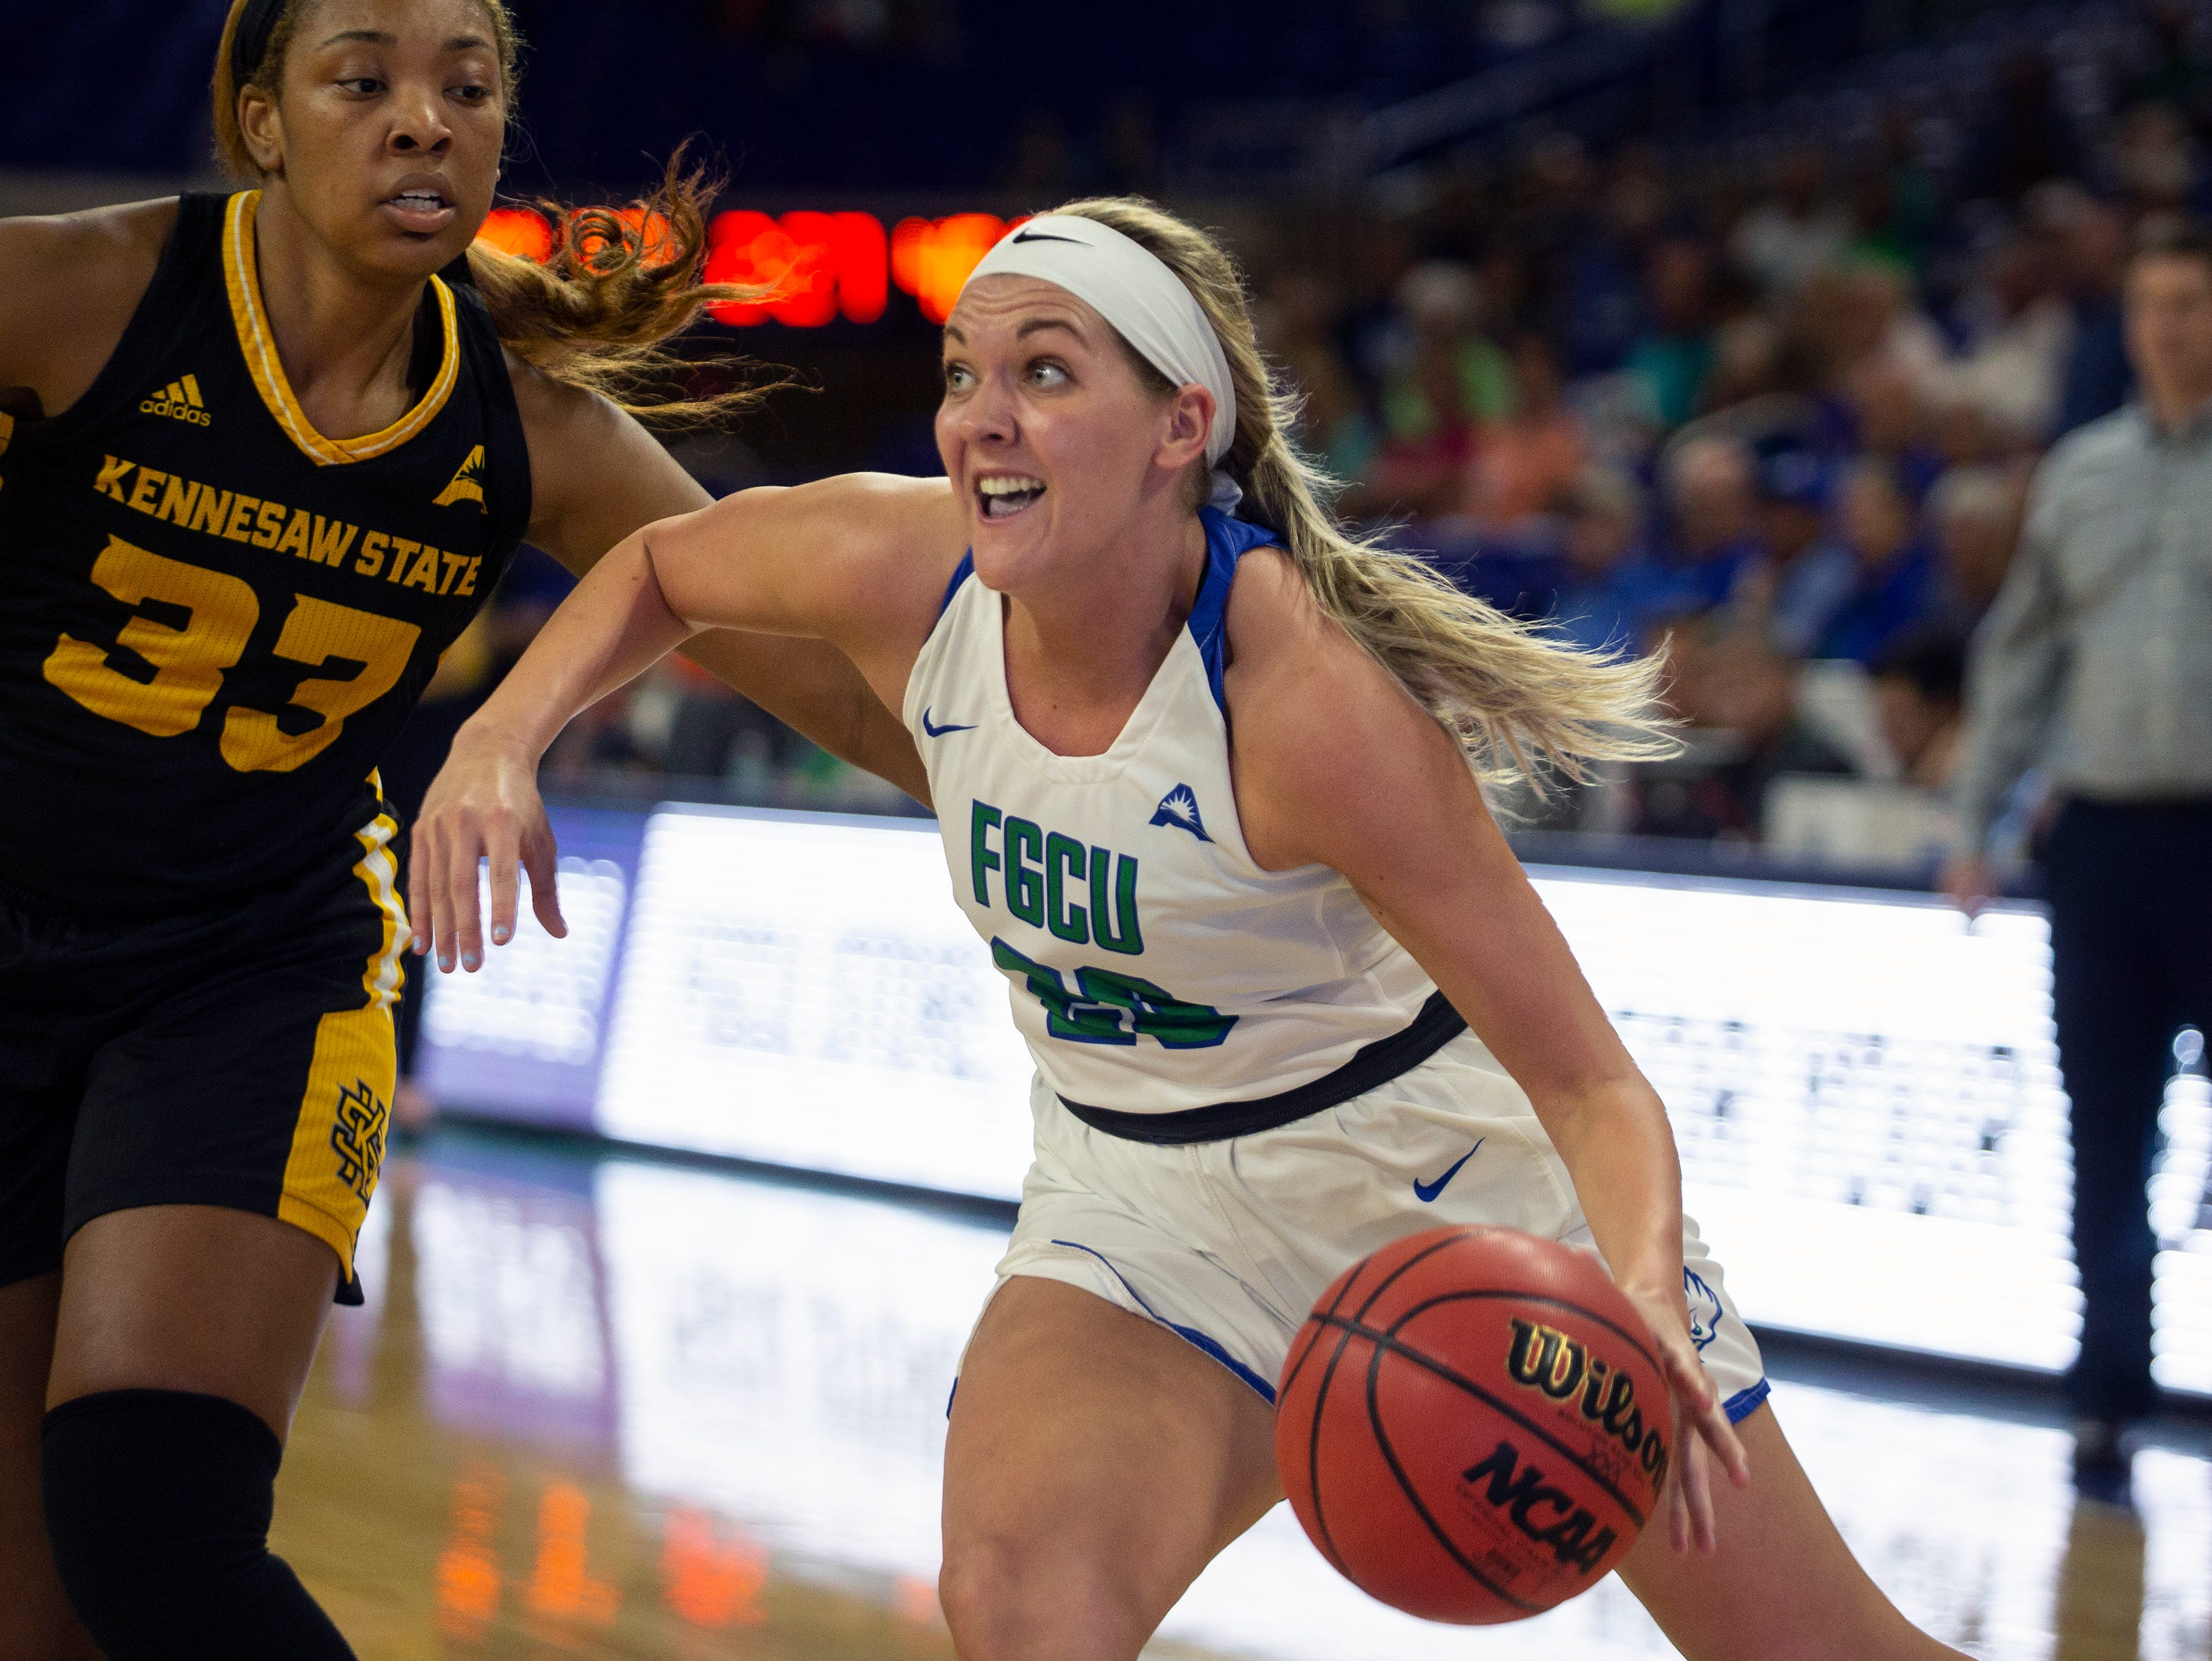 Florida Gulf Coast University's Tanner Bryant dribbles the ball while defended by Kennesaw State's Lexi Mann, Wednesday, March 13, 2019, at Florida Gulf Coast University's Alico Arena.